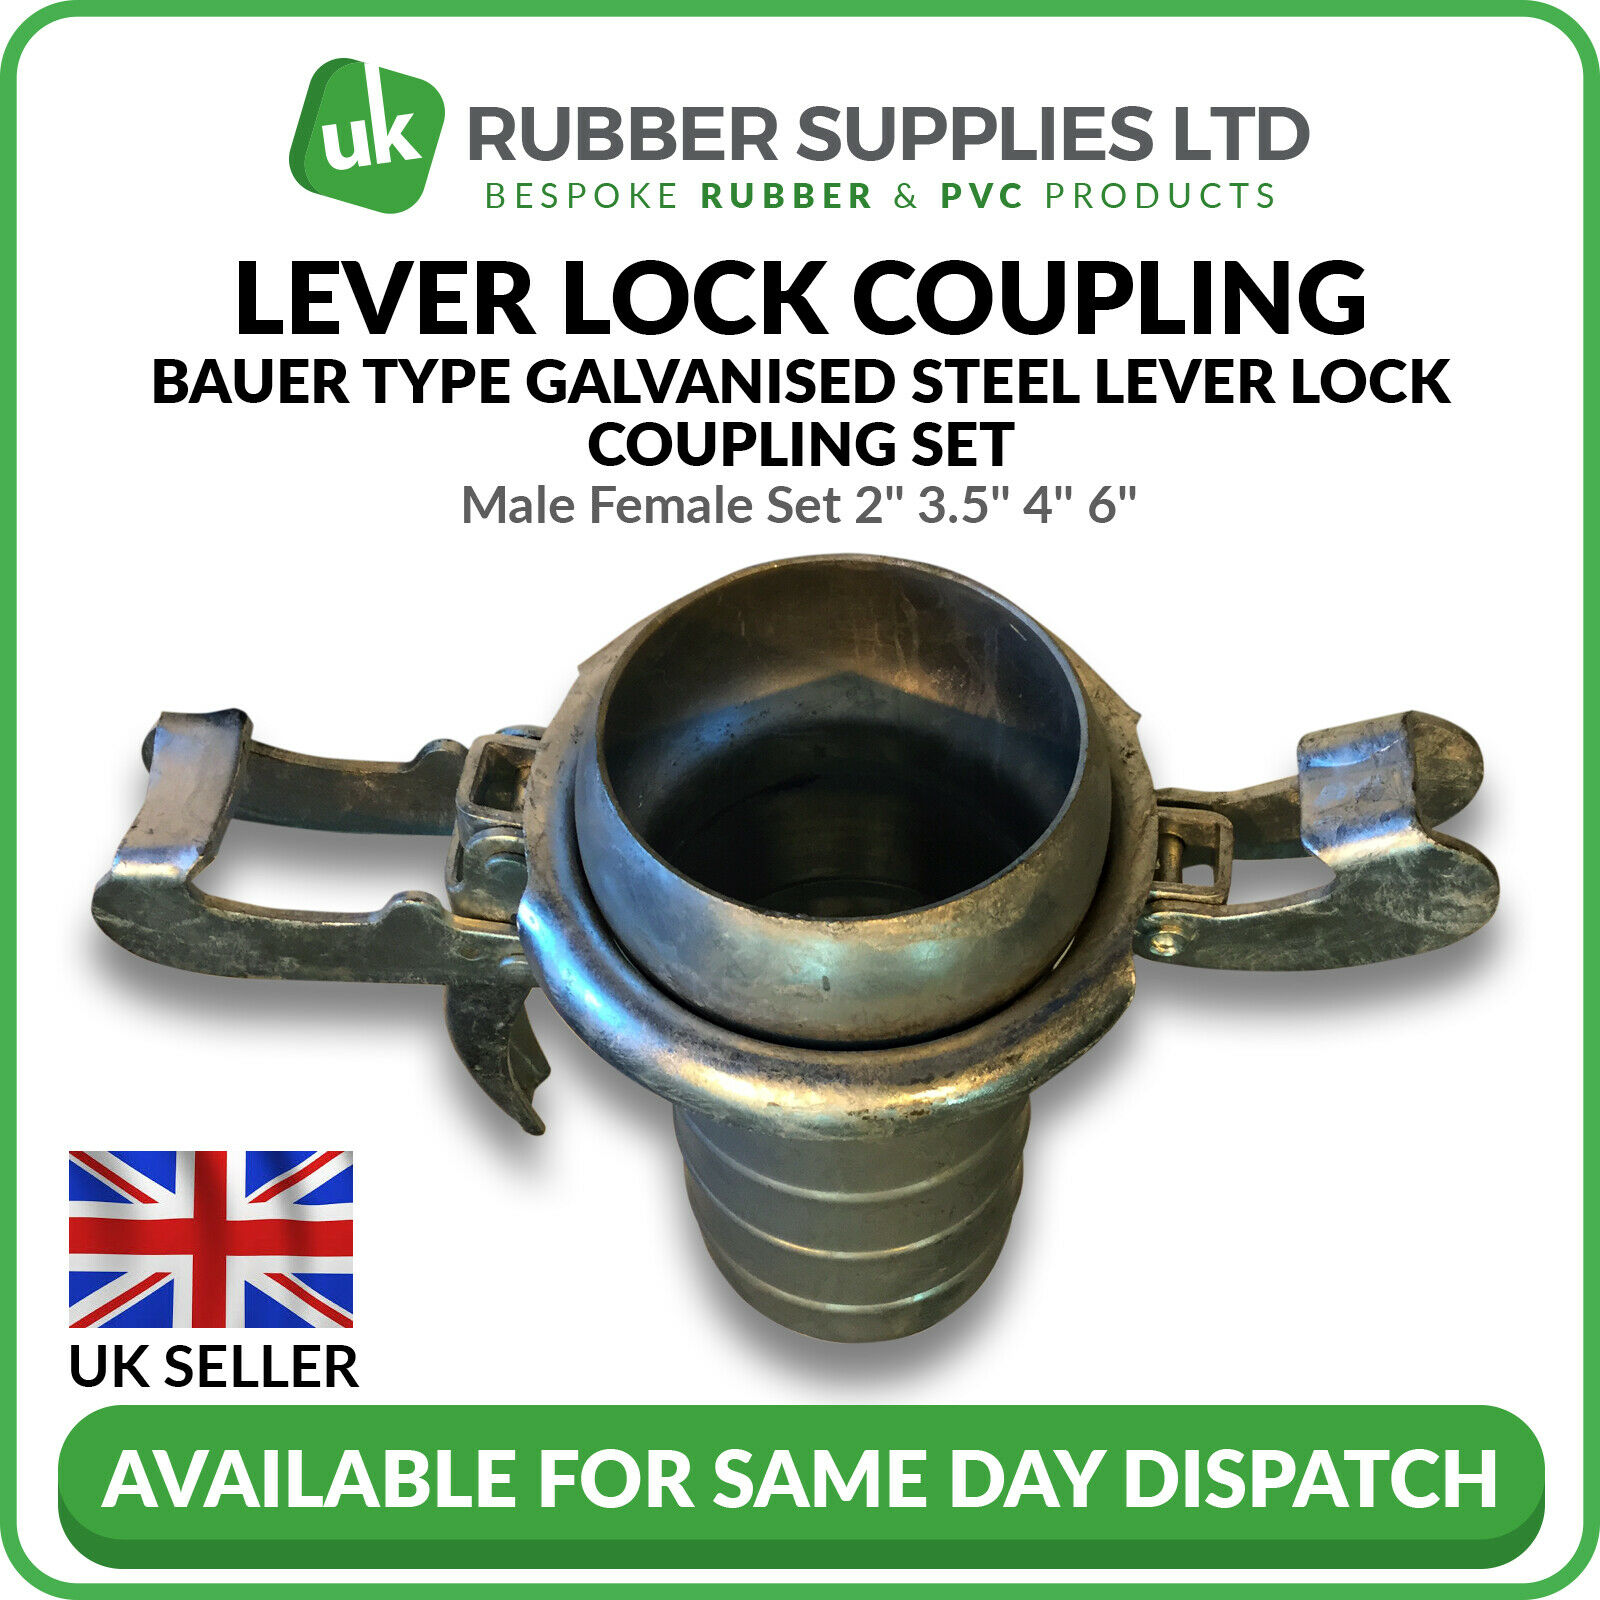 Bauer Slurry Fitting Male Female Set 2  3.5  4  6